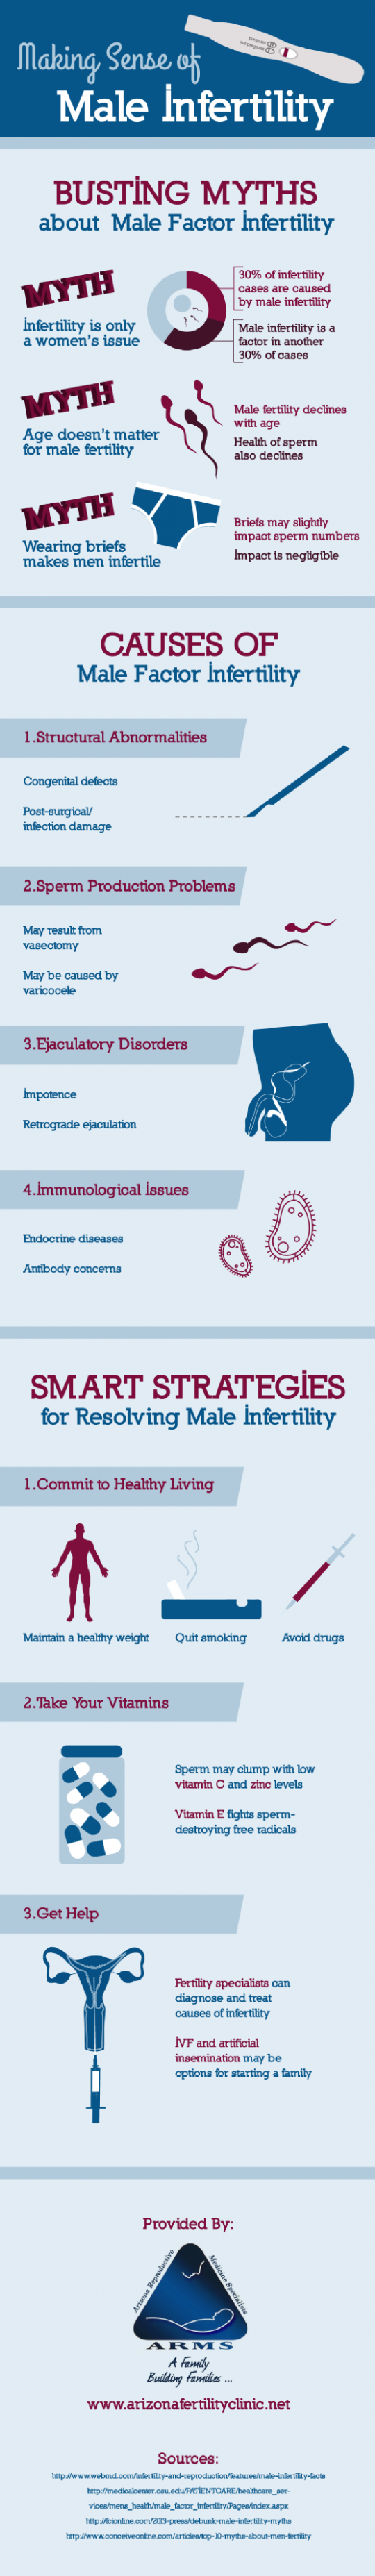 Making Sense of Male Infertility